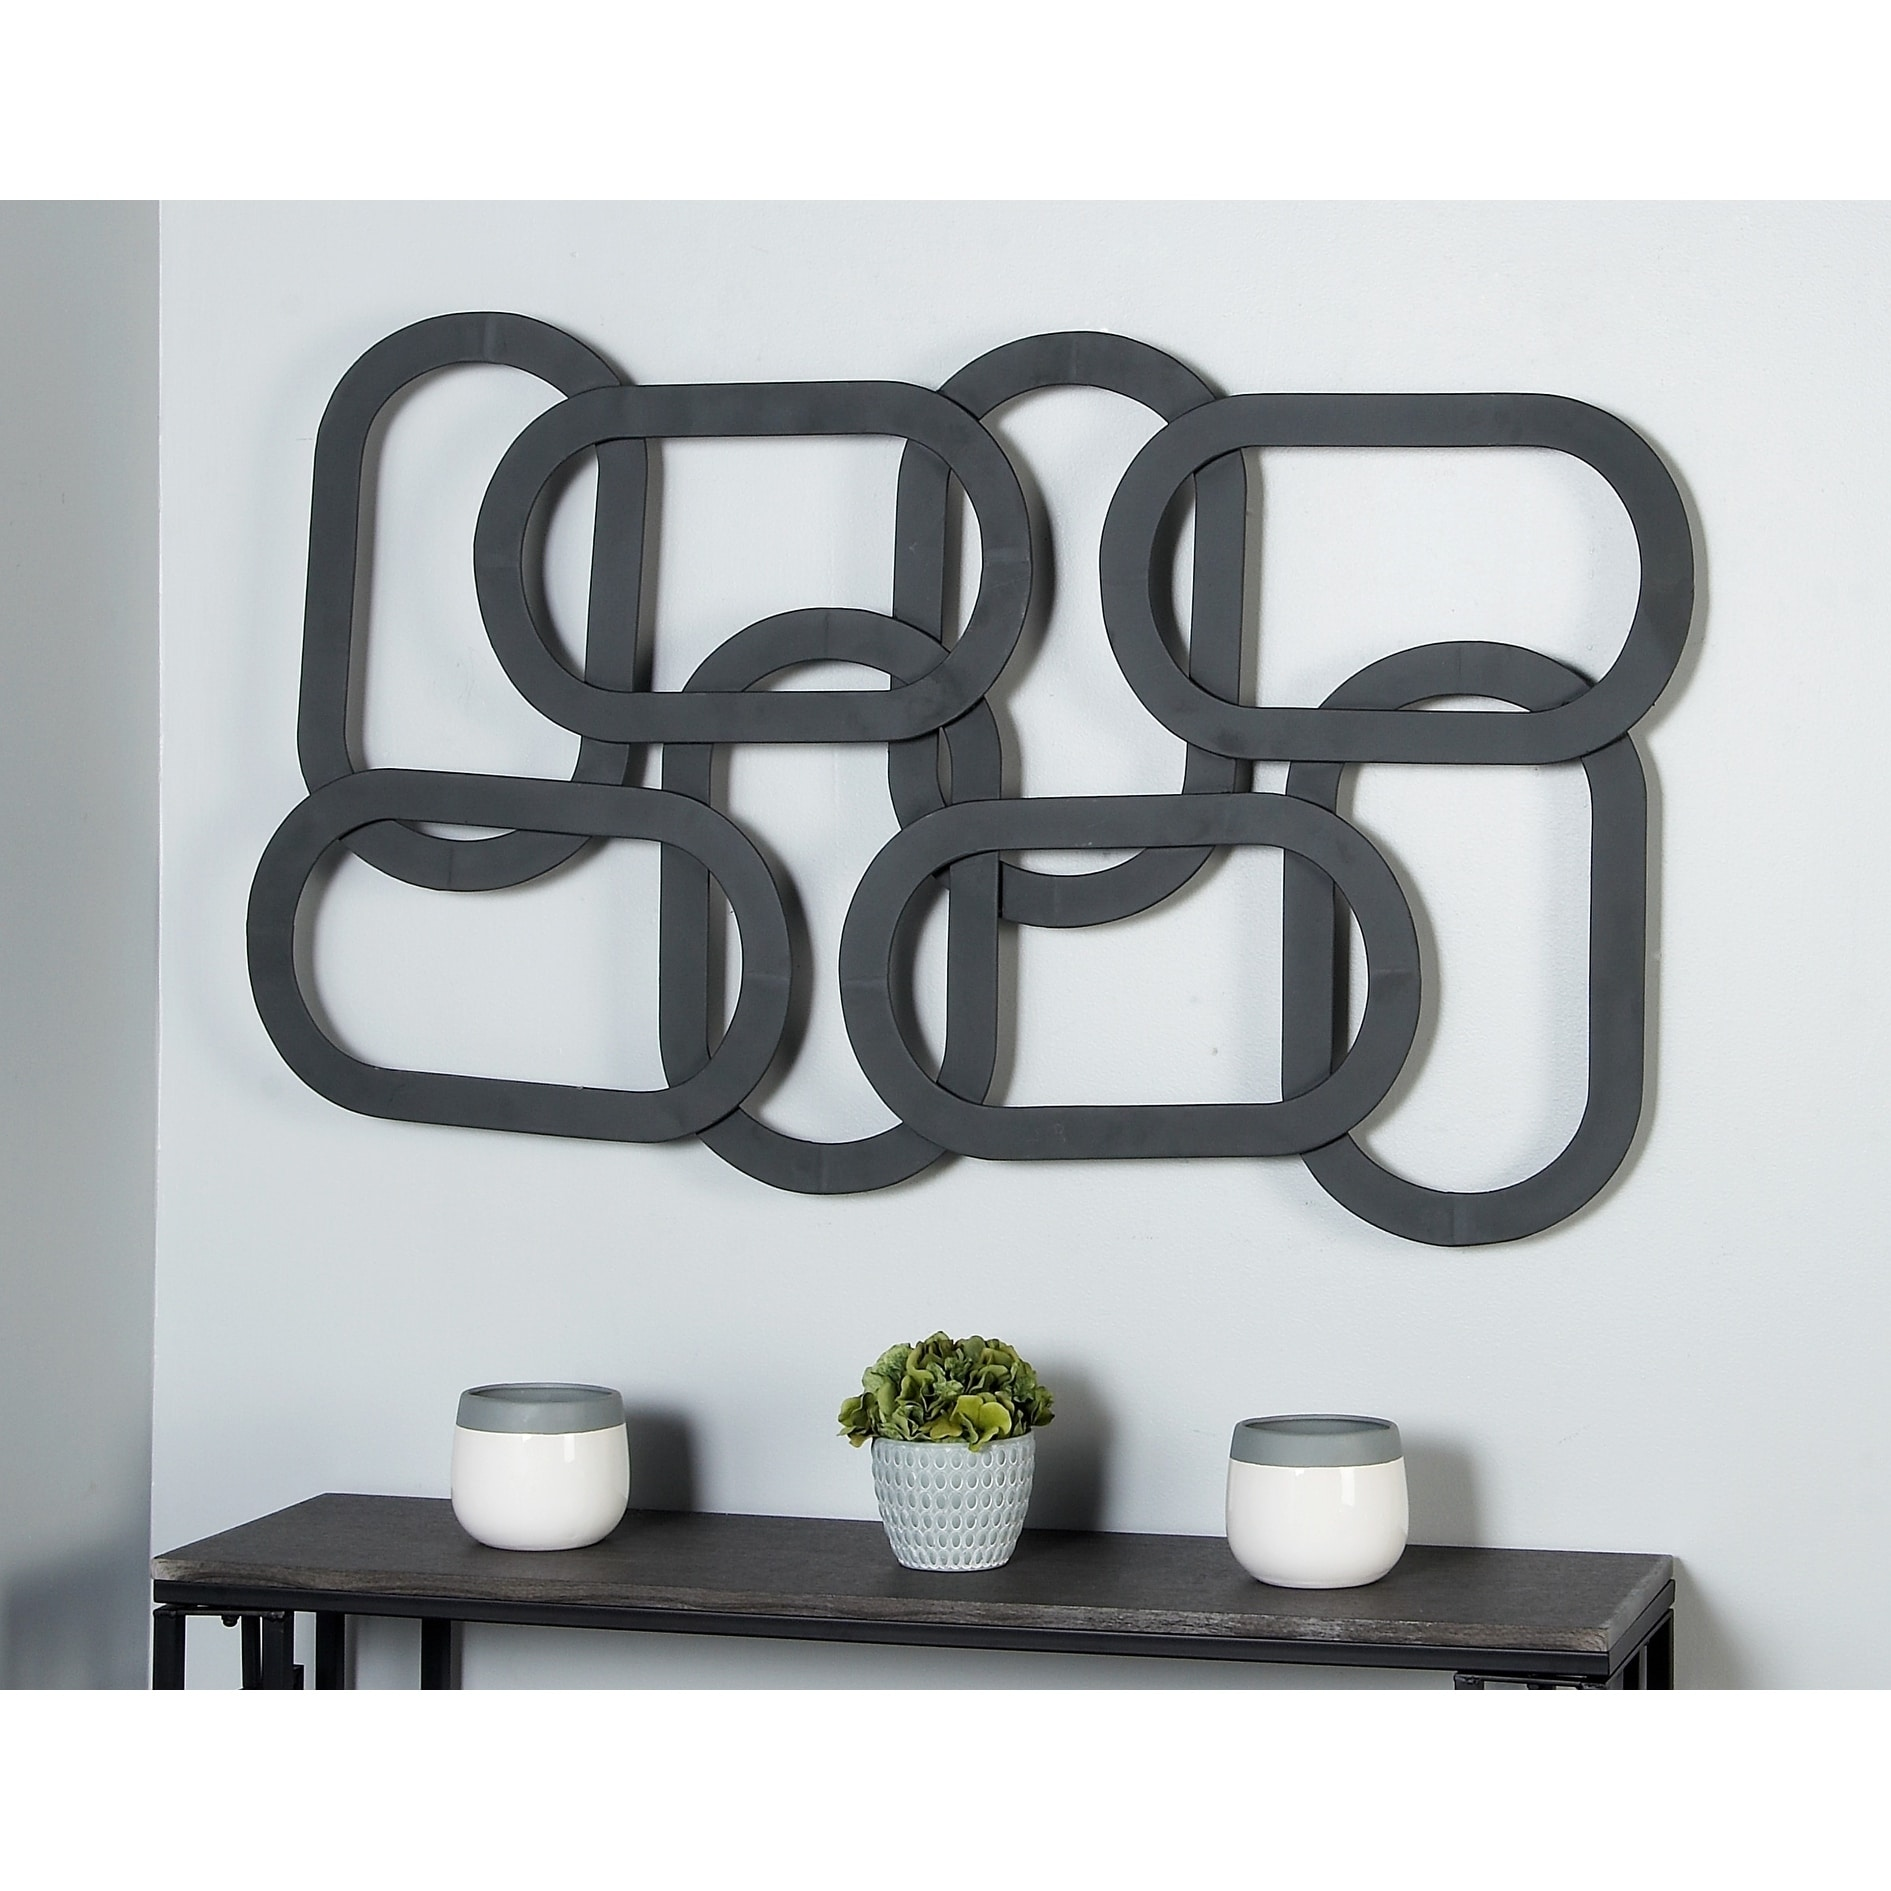 Contemporary 30 X 52 Inch Overlapping Ovals Wall Decor Overstock 20445129